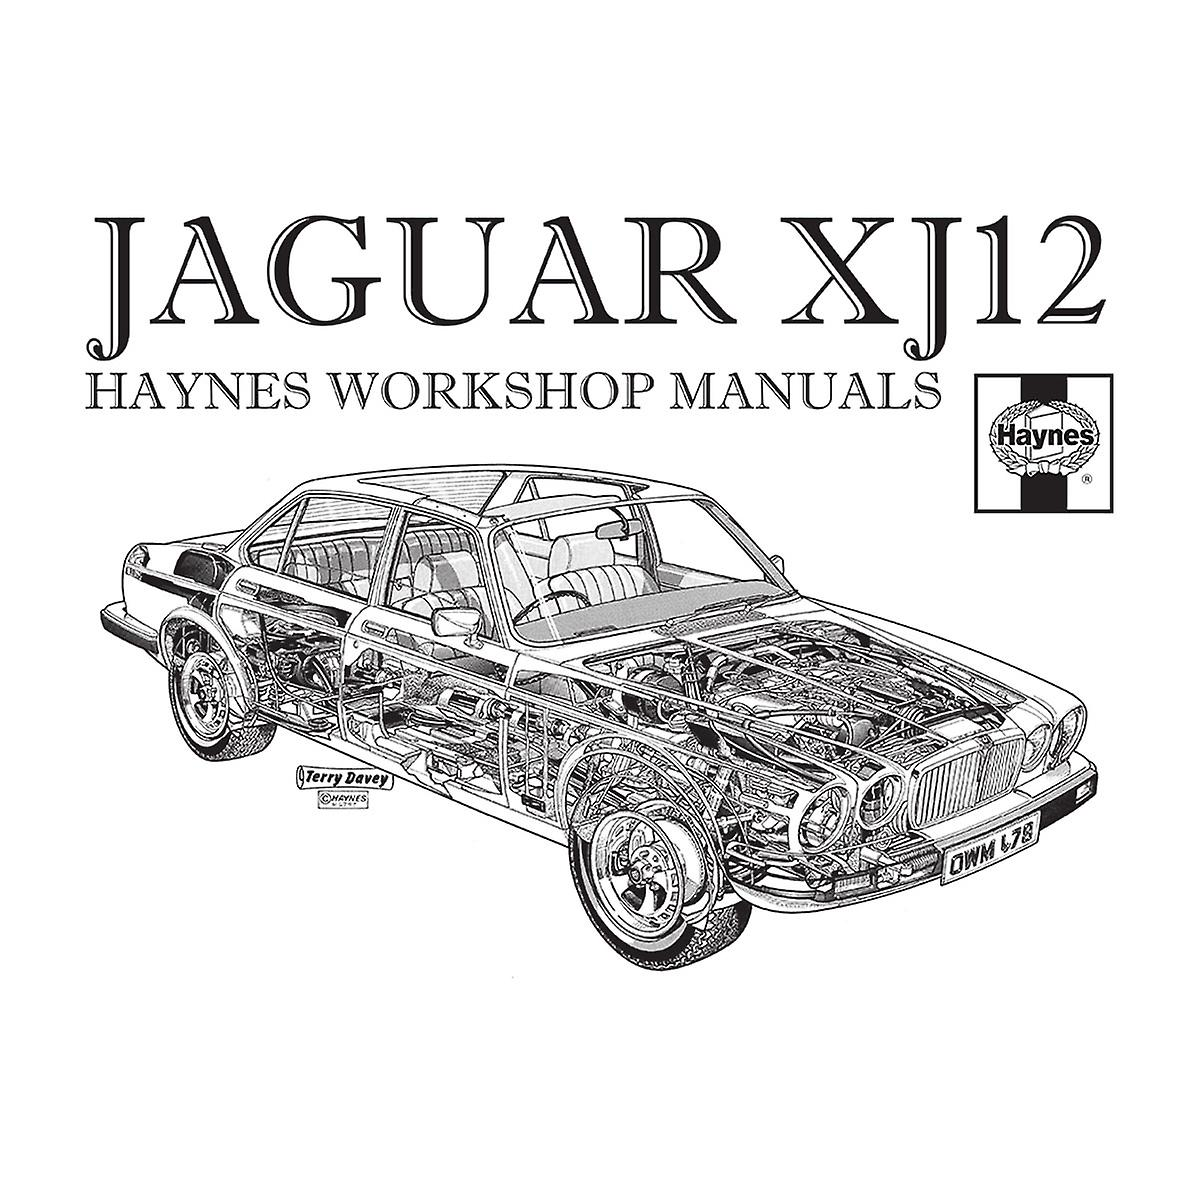 Haynes Owners Workshop Manual 0242 Jaguar XJ12 Black Men's